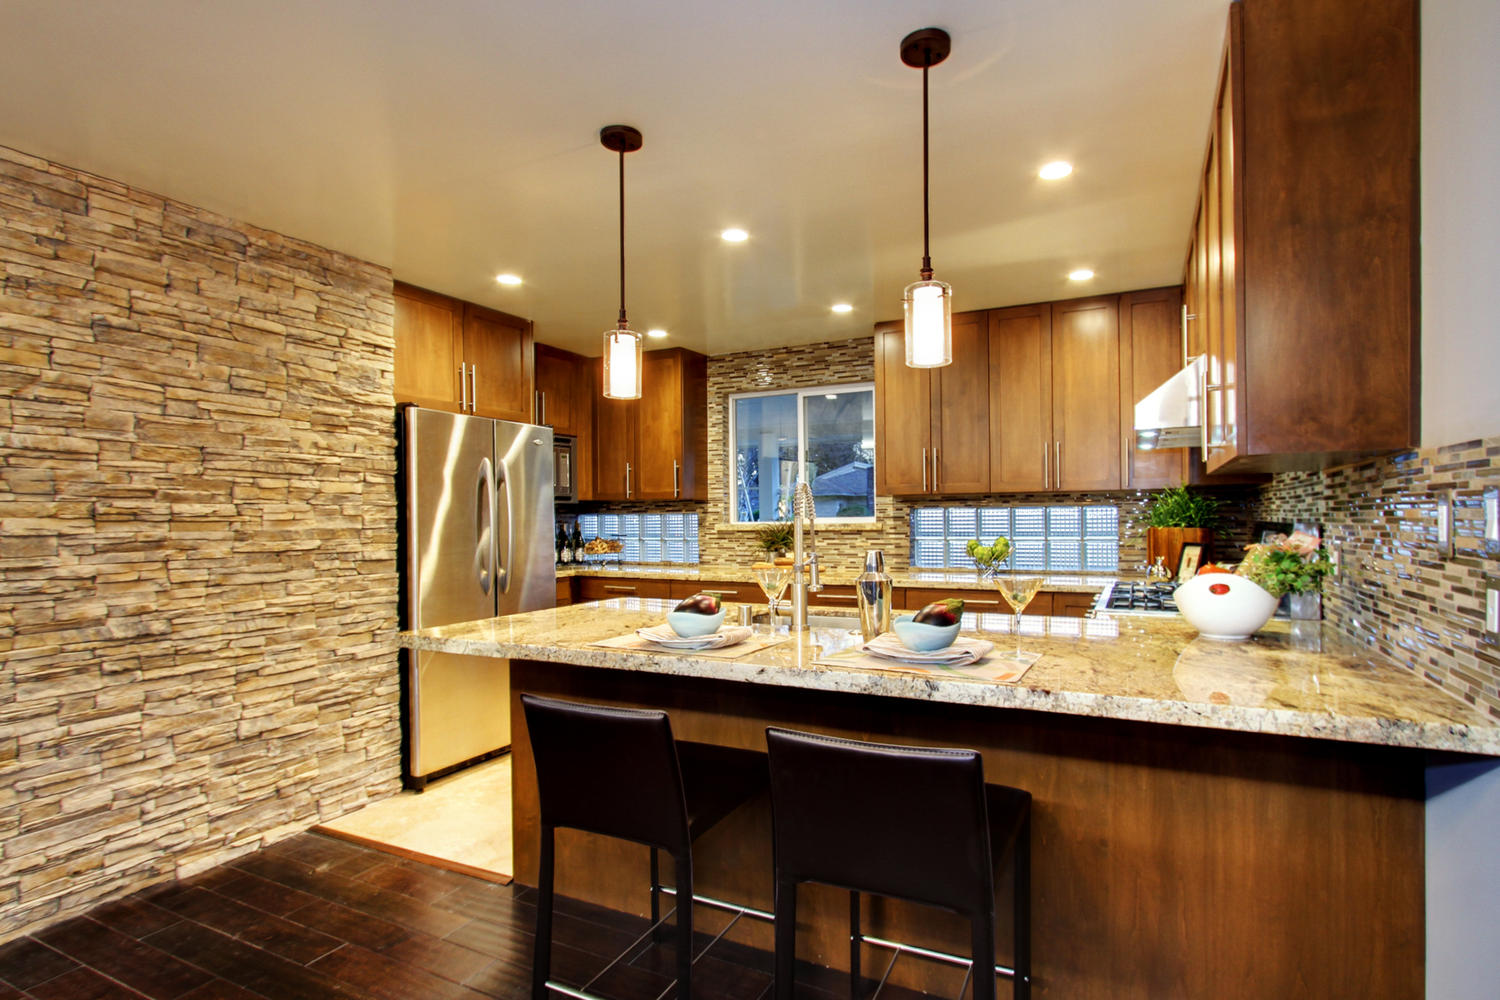 Decorative Kitchen Cabinetry